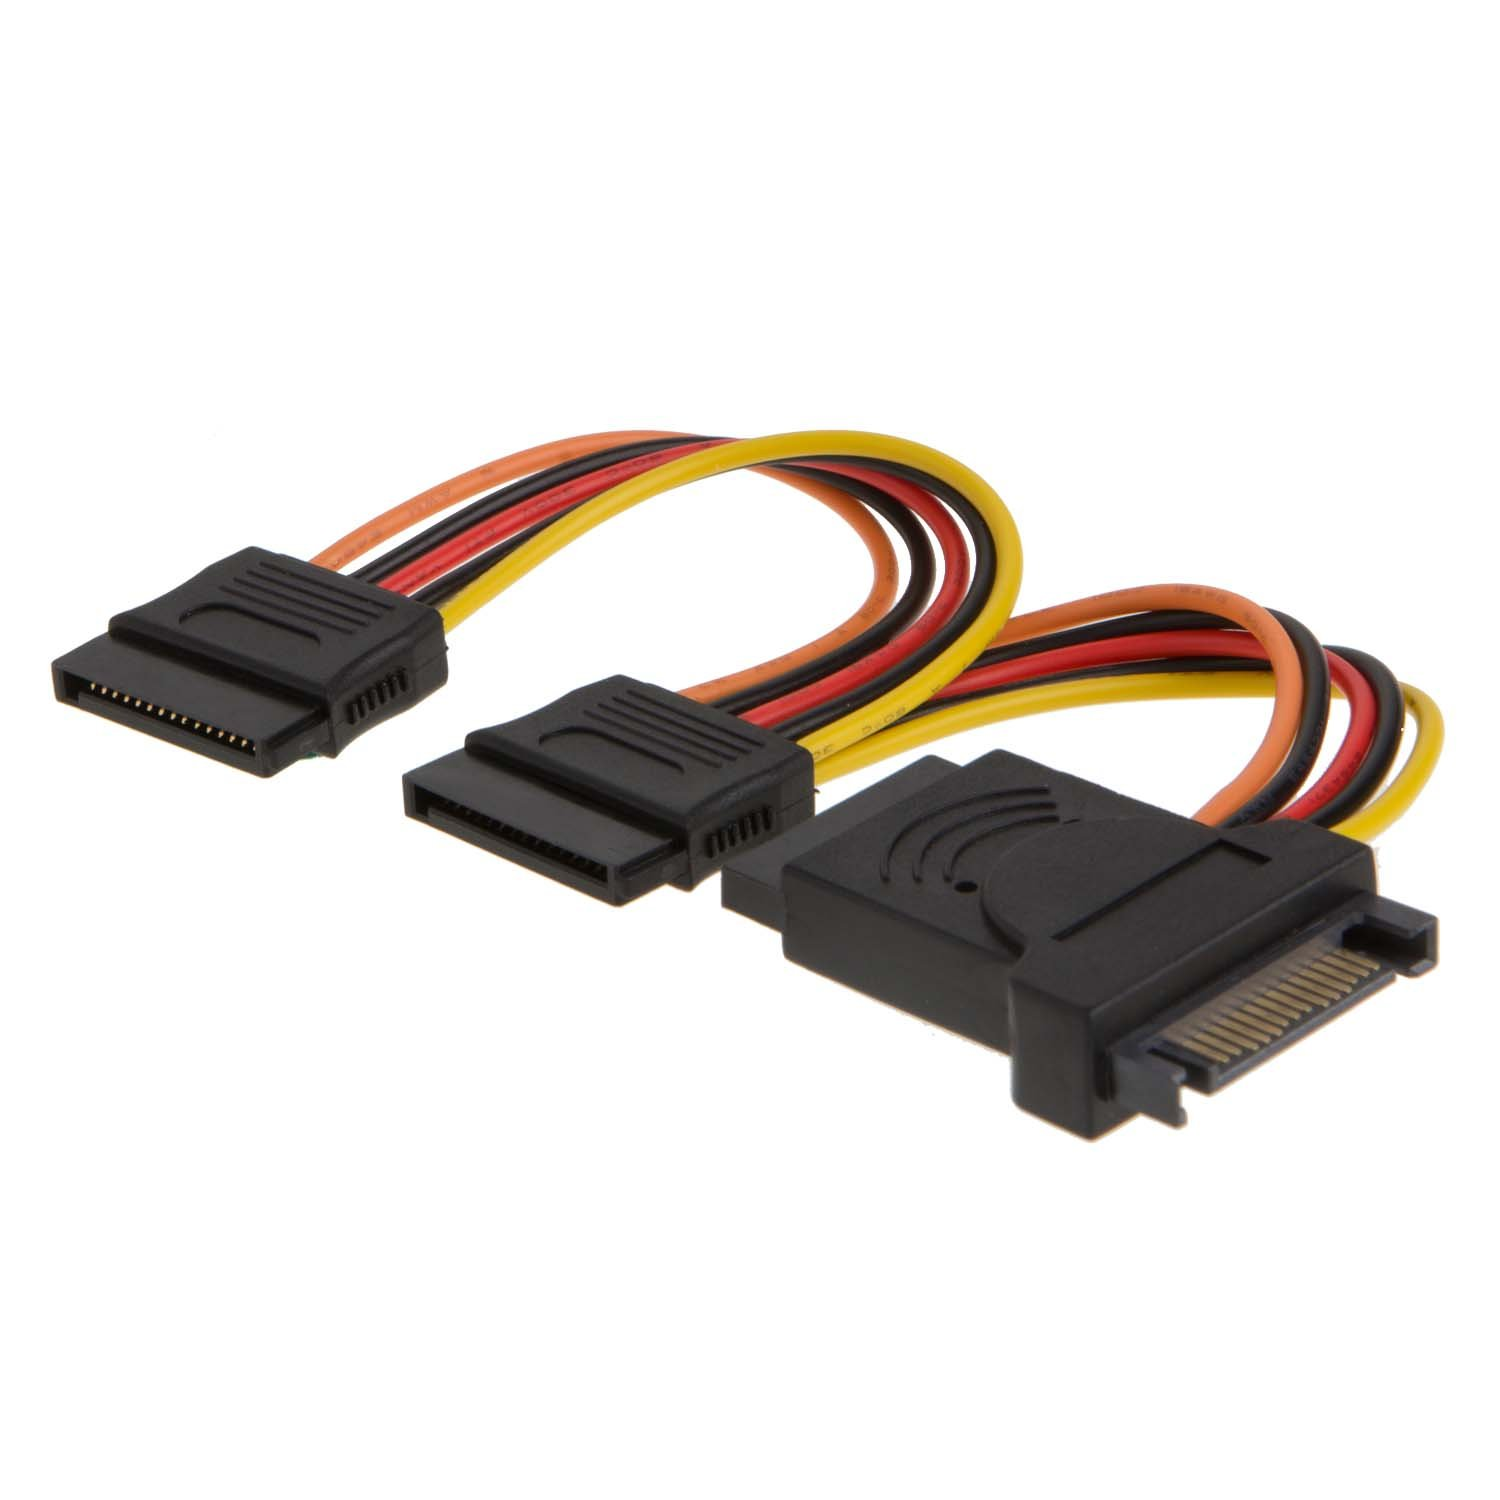 CableCreation SATA 15pin Power Cable, 6-inch SATA 15-Pin Male to 3x15-Pin  Female Power Extension Y Splitter Cable Adapter